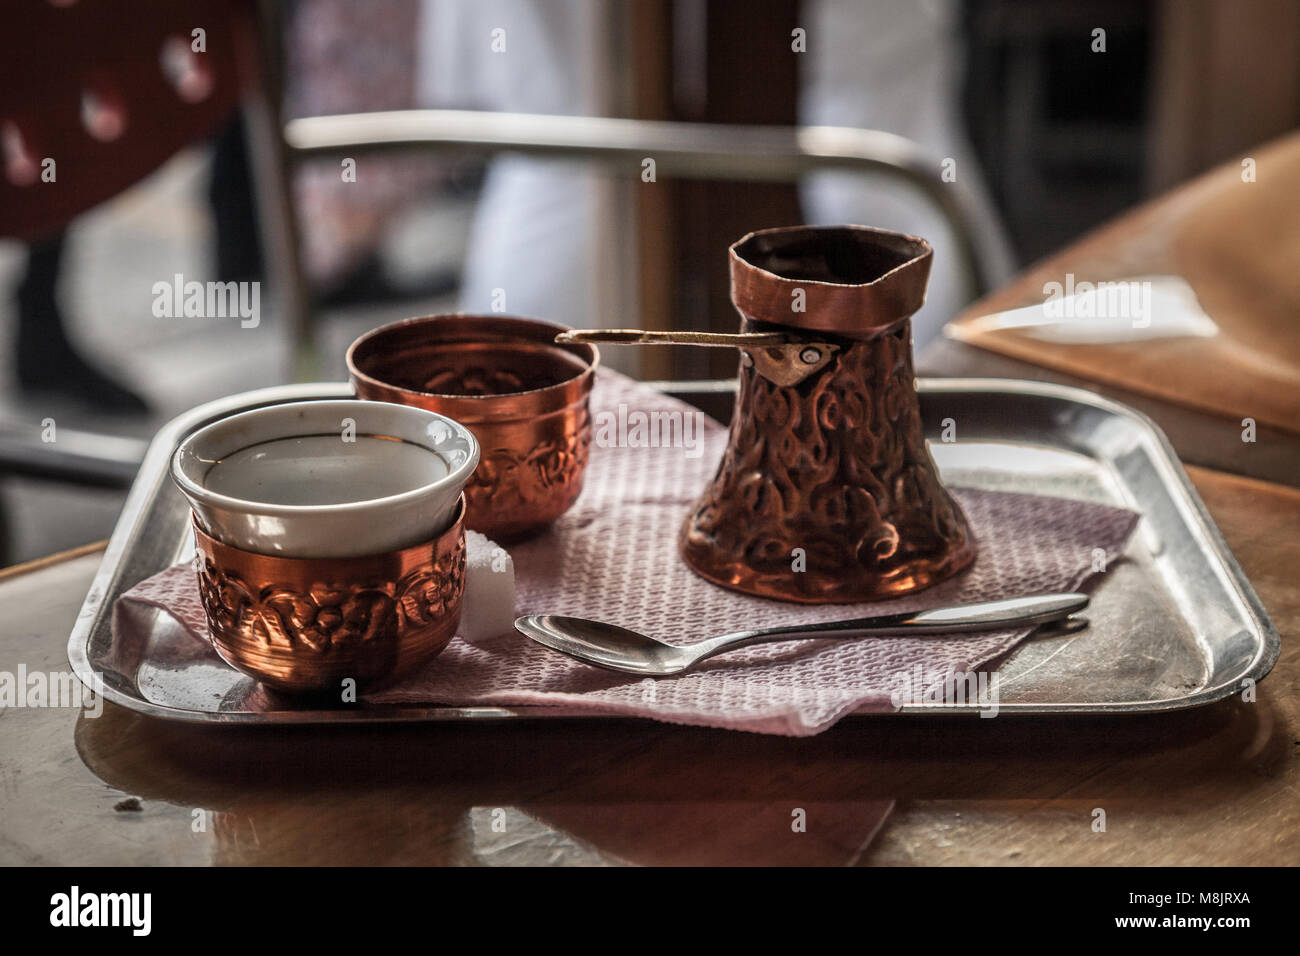 Bosnian Coffee Pot, also known as Dzezva, taken in a Sarajevo Cafe. A Dzezva, or cezve is a pot designed specifically - Stock Image